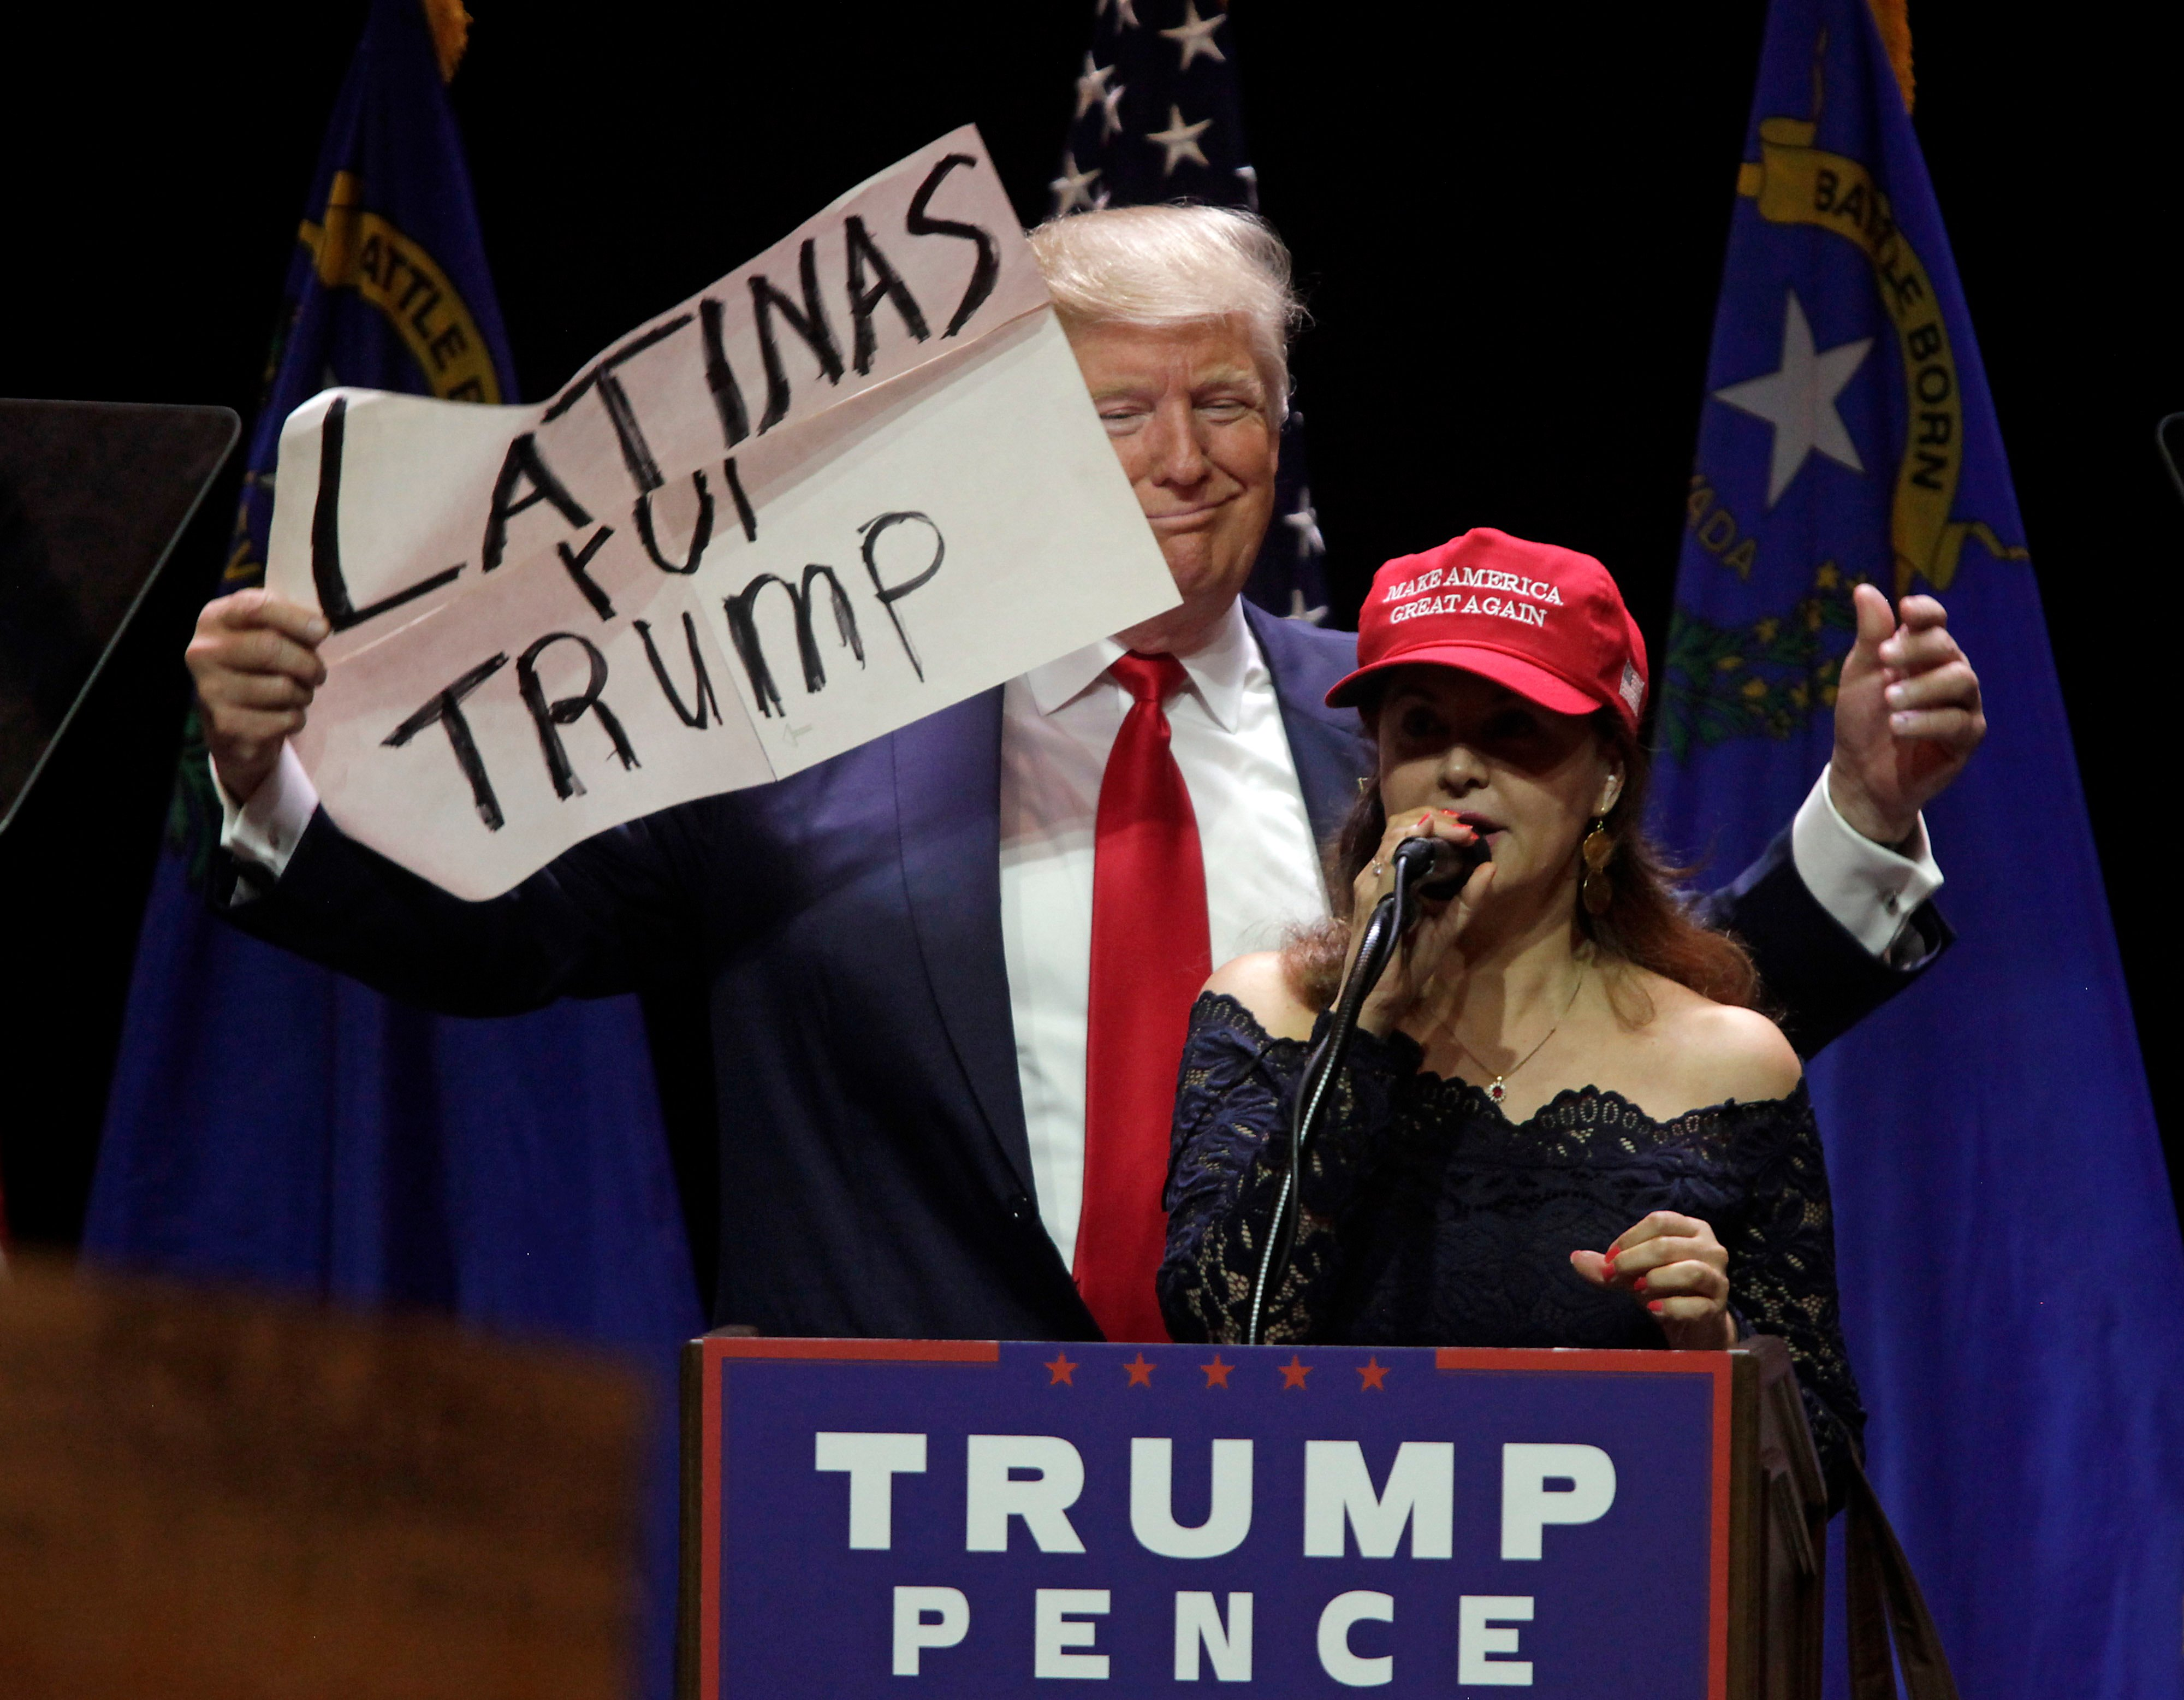 A Latino supporter speaks on stage with Republican presidential candidate Donald Trump during a campaign rally at the Venetian Hotel on October 30, 2016 in Las Vegas, Nevada. (JOHN GURZINSKI/AFP/Getty Images)